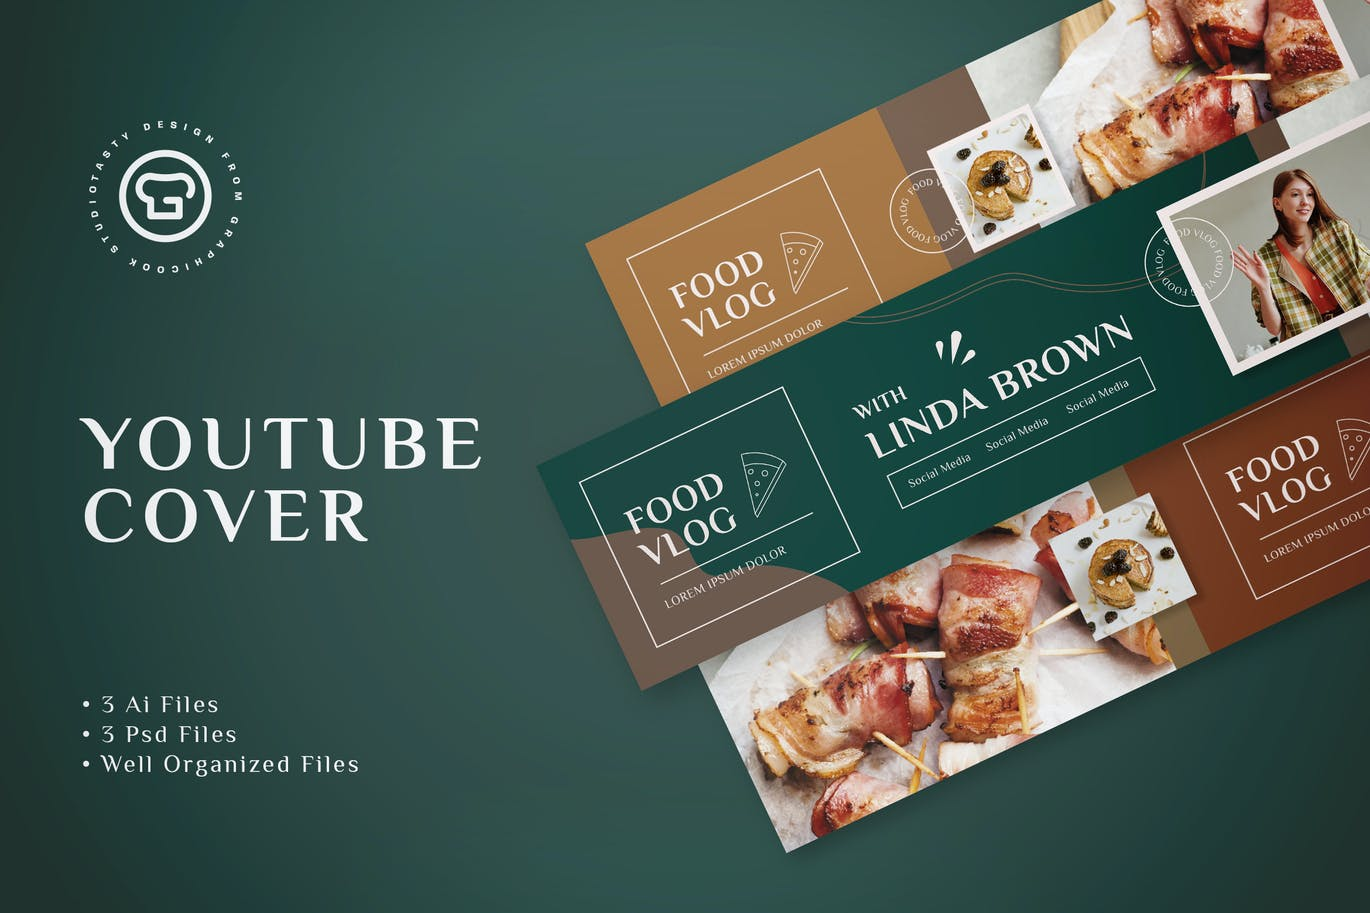 I will design an outstanding YouTube Banner or Cover Design